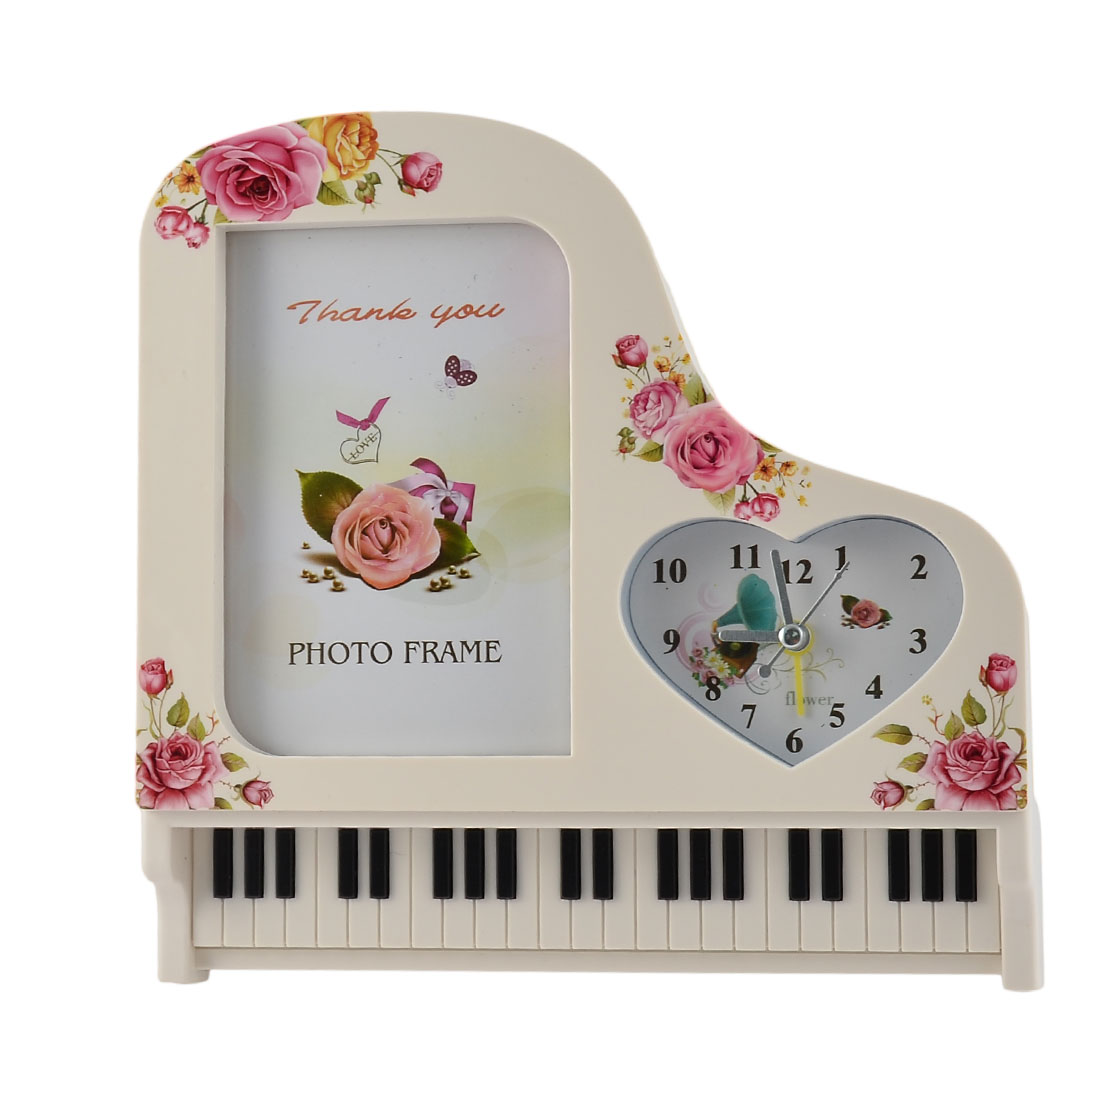 Home Bedroom Plastic Piano Shaped Photo Frame Decor Alarm Clock Off White